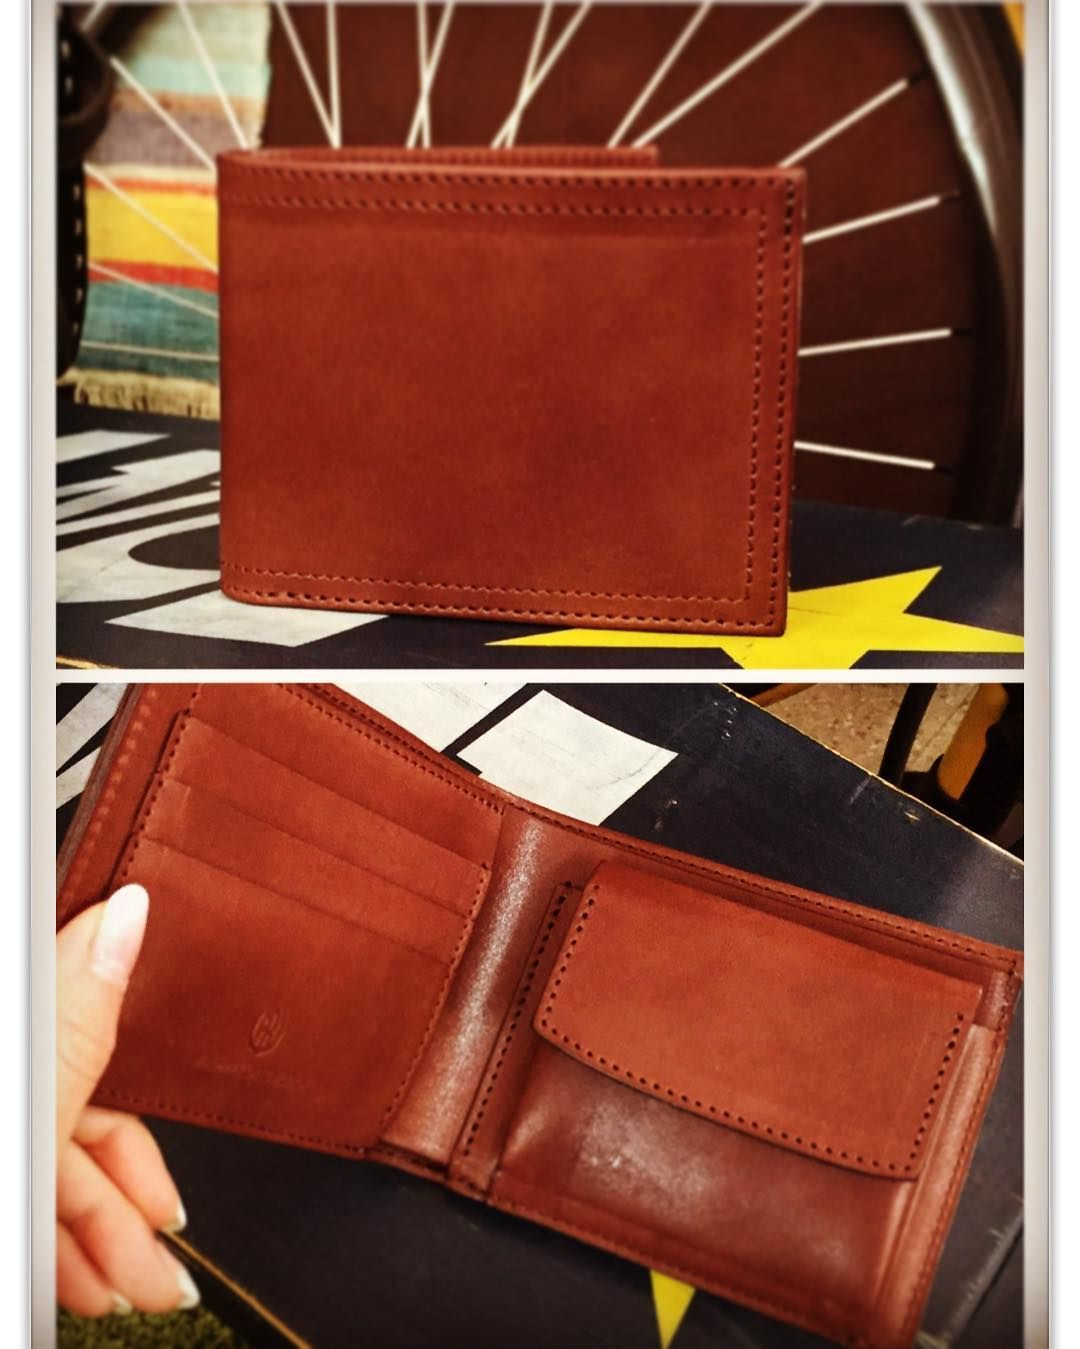 ". Square form Leather ShortWallet ""PR-PS01""  Simple But personality! . BrandPAILOT RIVER . http://bit.ly/2hrec1D . . Please check Daikanyama Show room!! . It is the 2nd floor of Daikanyama post office. . ショールームを期間限定ですが渋谷区代官山郵便局の2階にて弊社営業が常駐しております Showrooms are open on the 2nd floor of Shibuya Daikanyama post office 2F LFC. . 不定休ですので大変申し訳ありませんがご来店の際は必ずカレンダーをご確認ください  We are very sorry because it is irregular holiday but be sure to check the calendar when visiting. . 請來代官山展示店鋪參觀…"